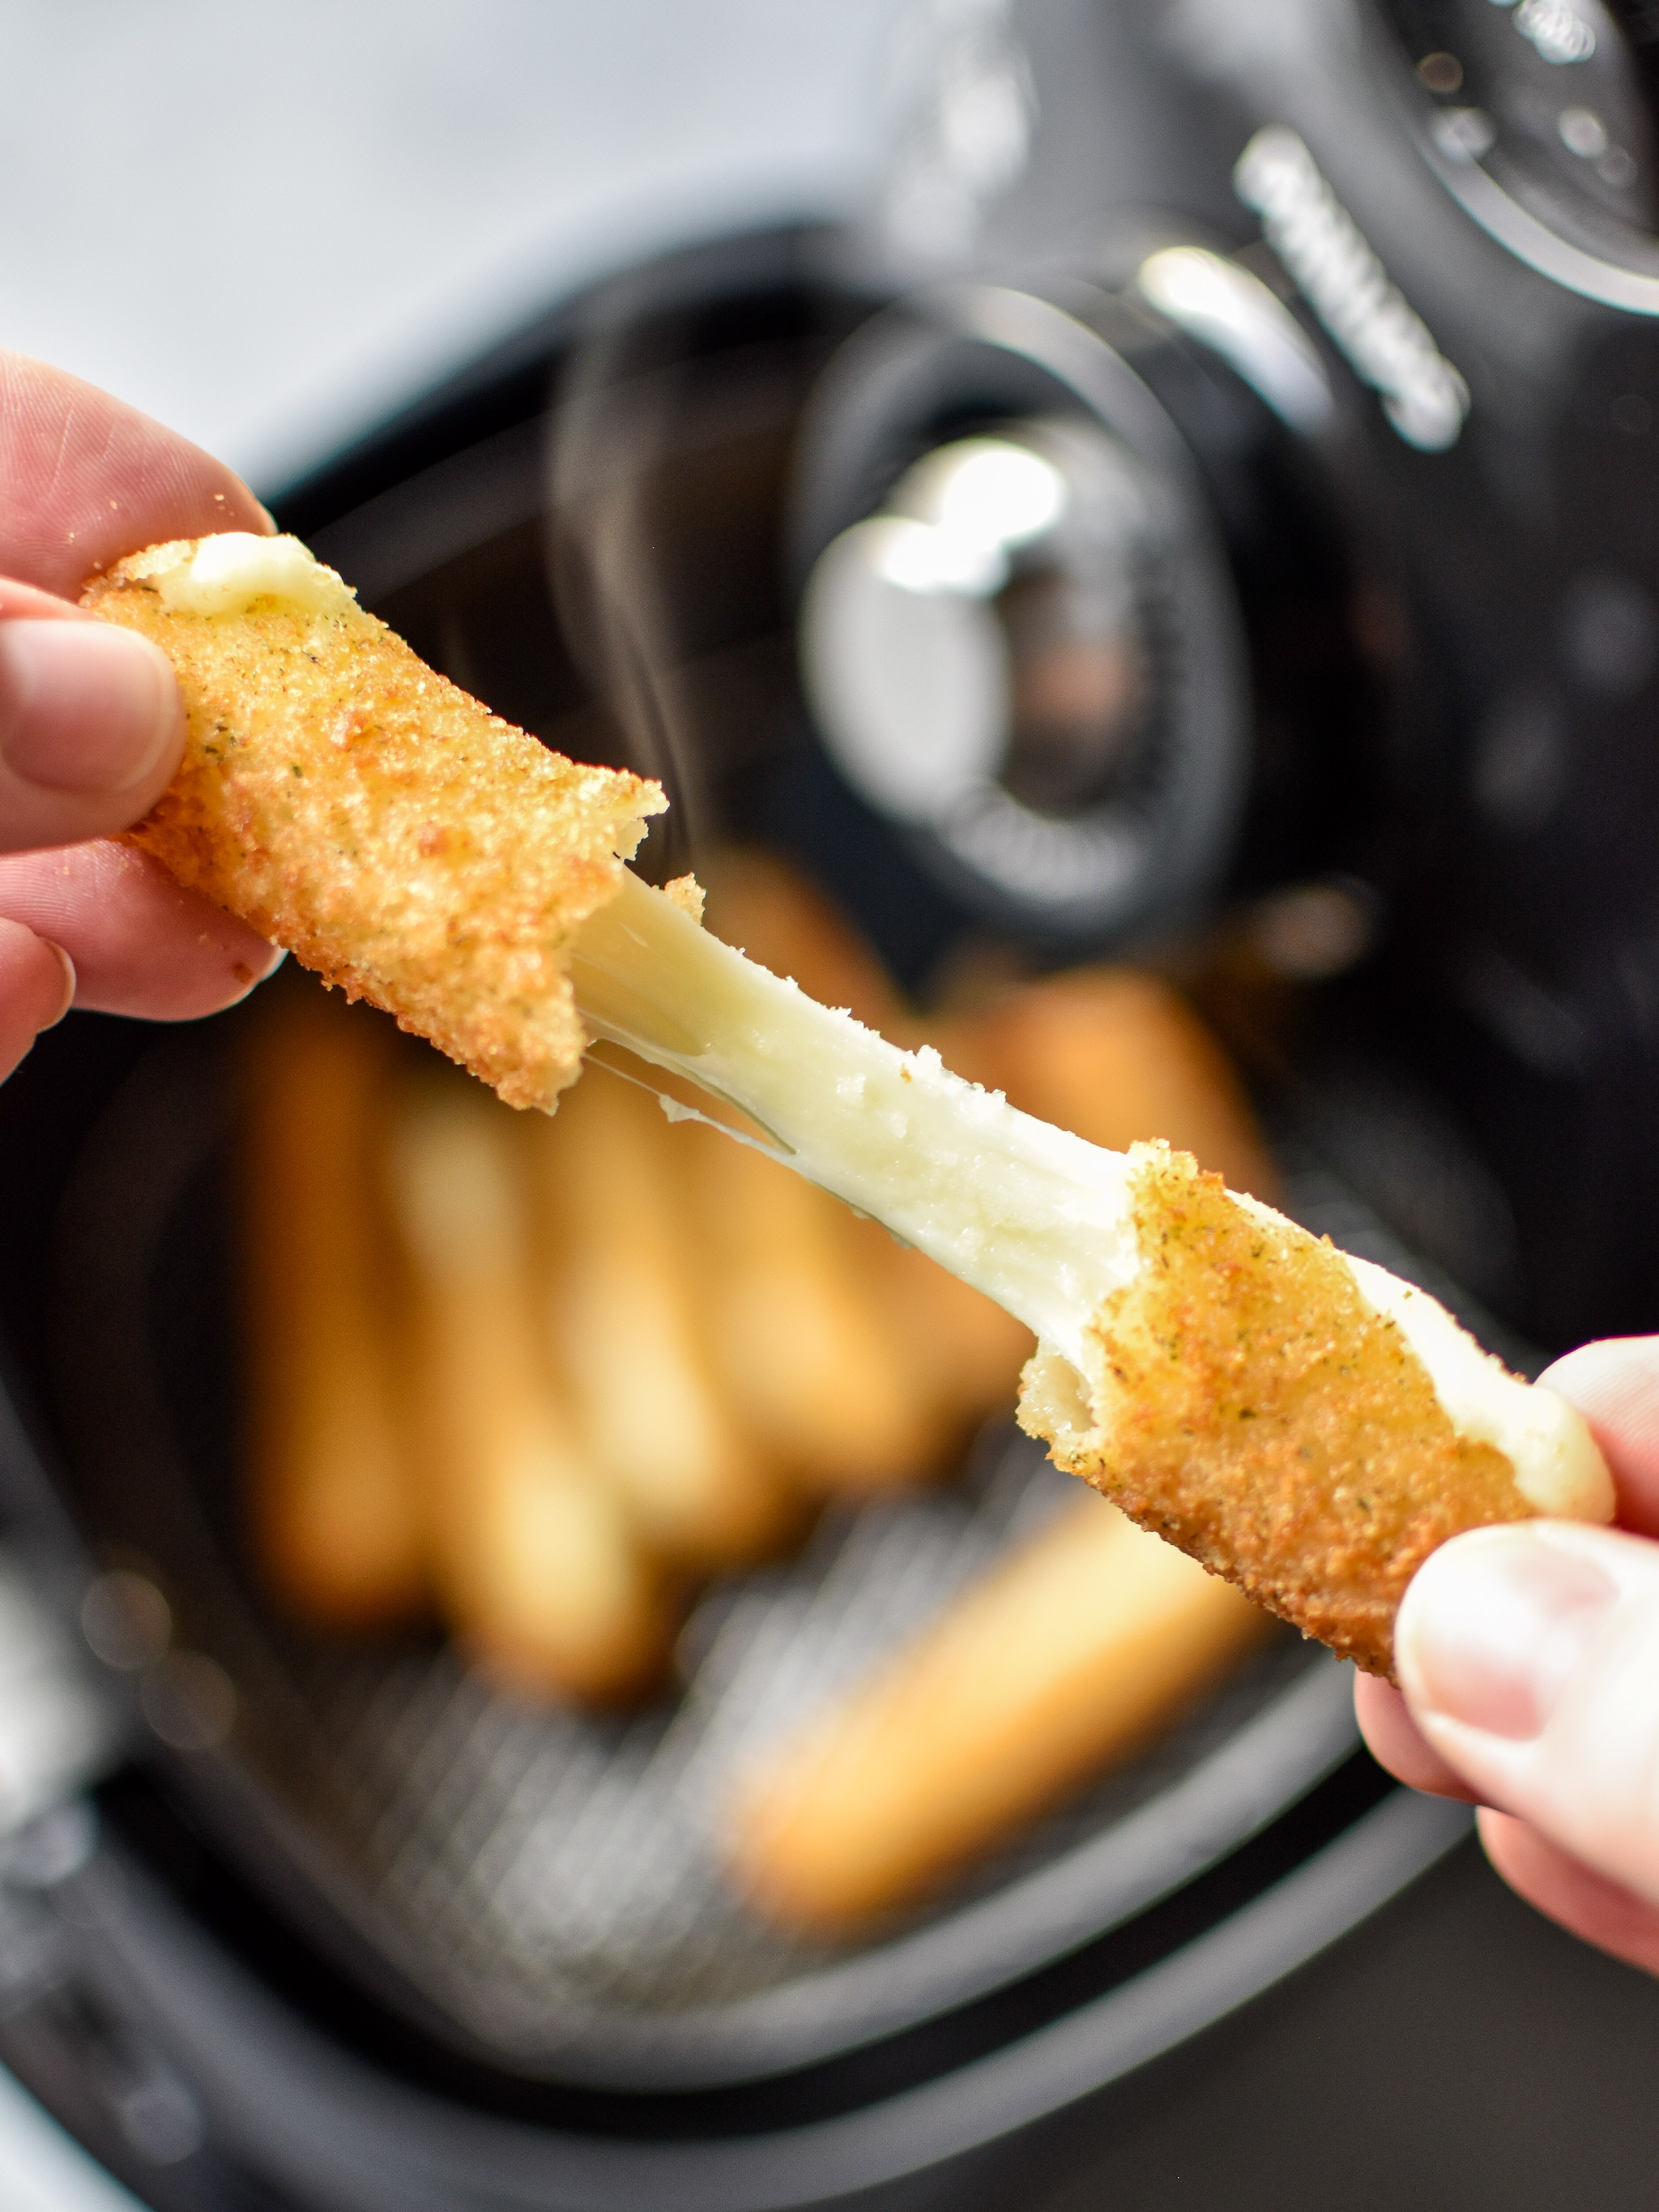 Cheesy mozzarella stick made in the air fryer!